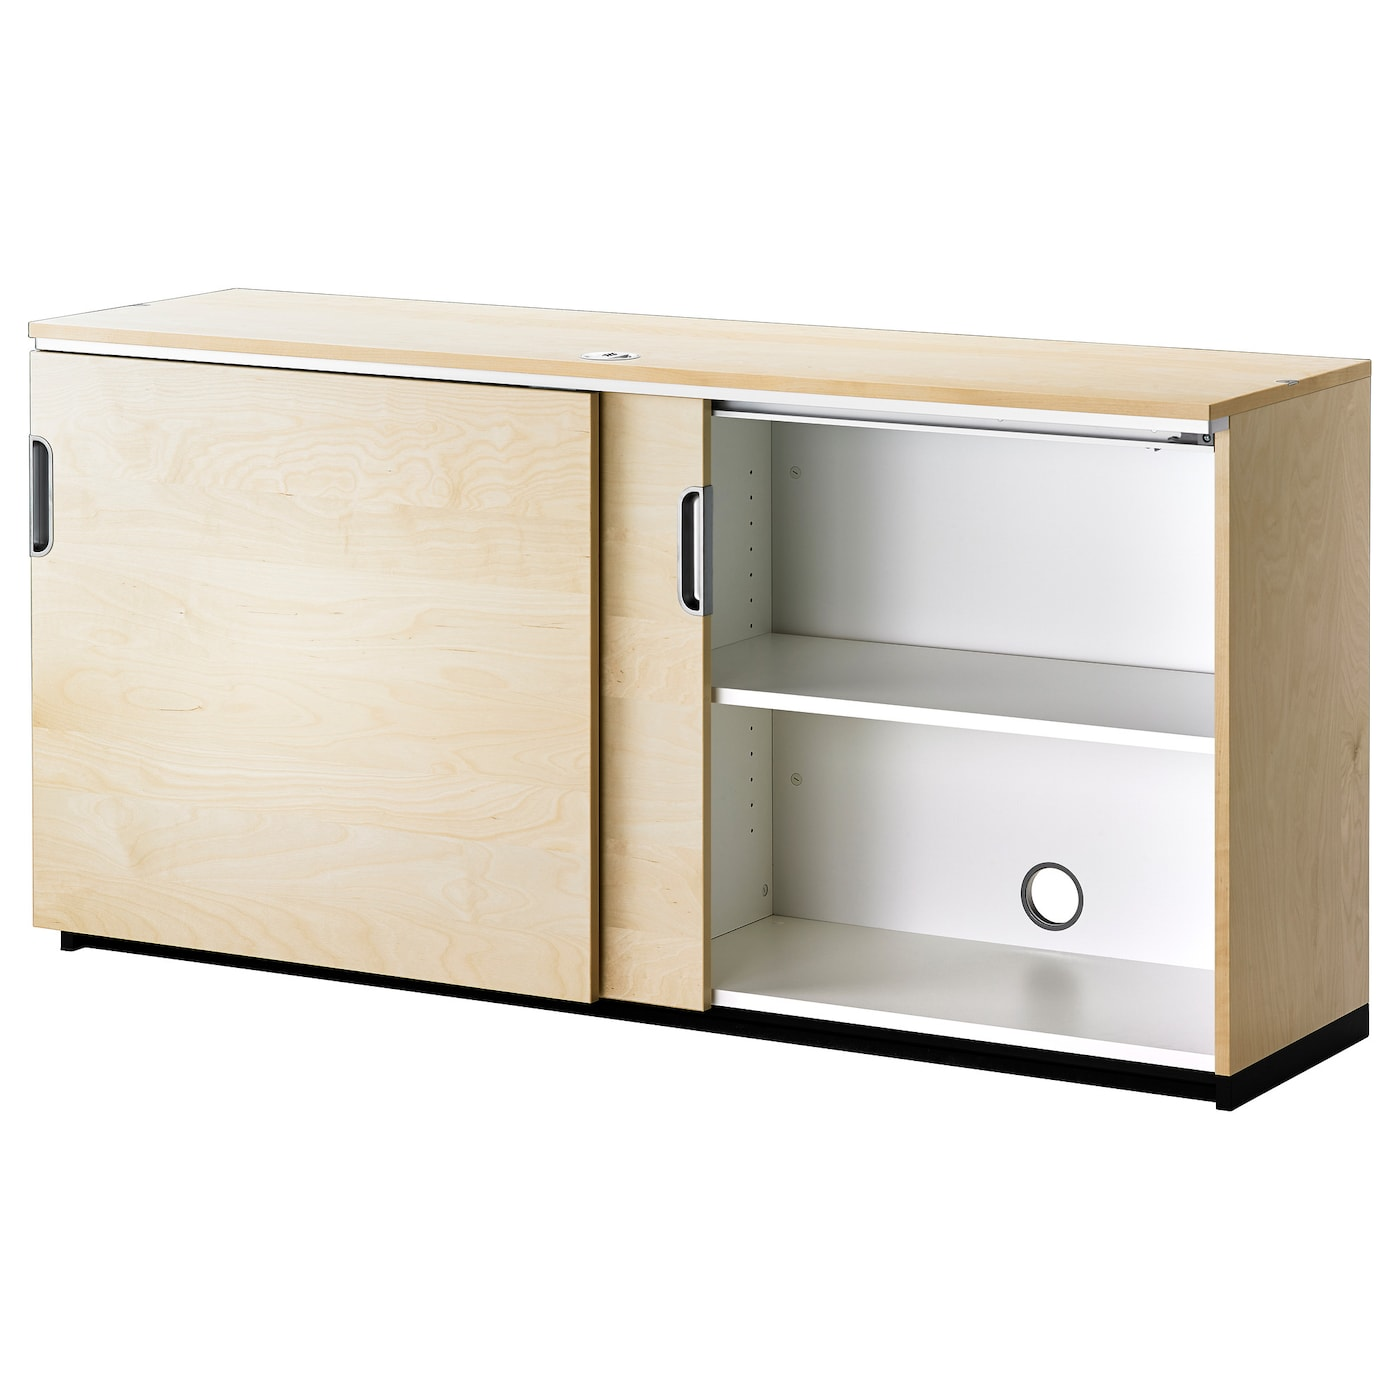 Galant cabinet with sliding doors birch veneer 160x80 cm for Sliding drawers for kitchen cabinets